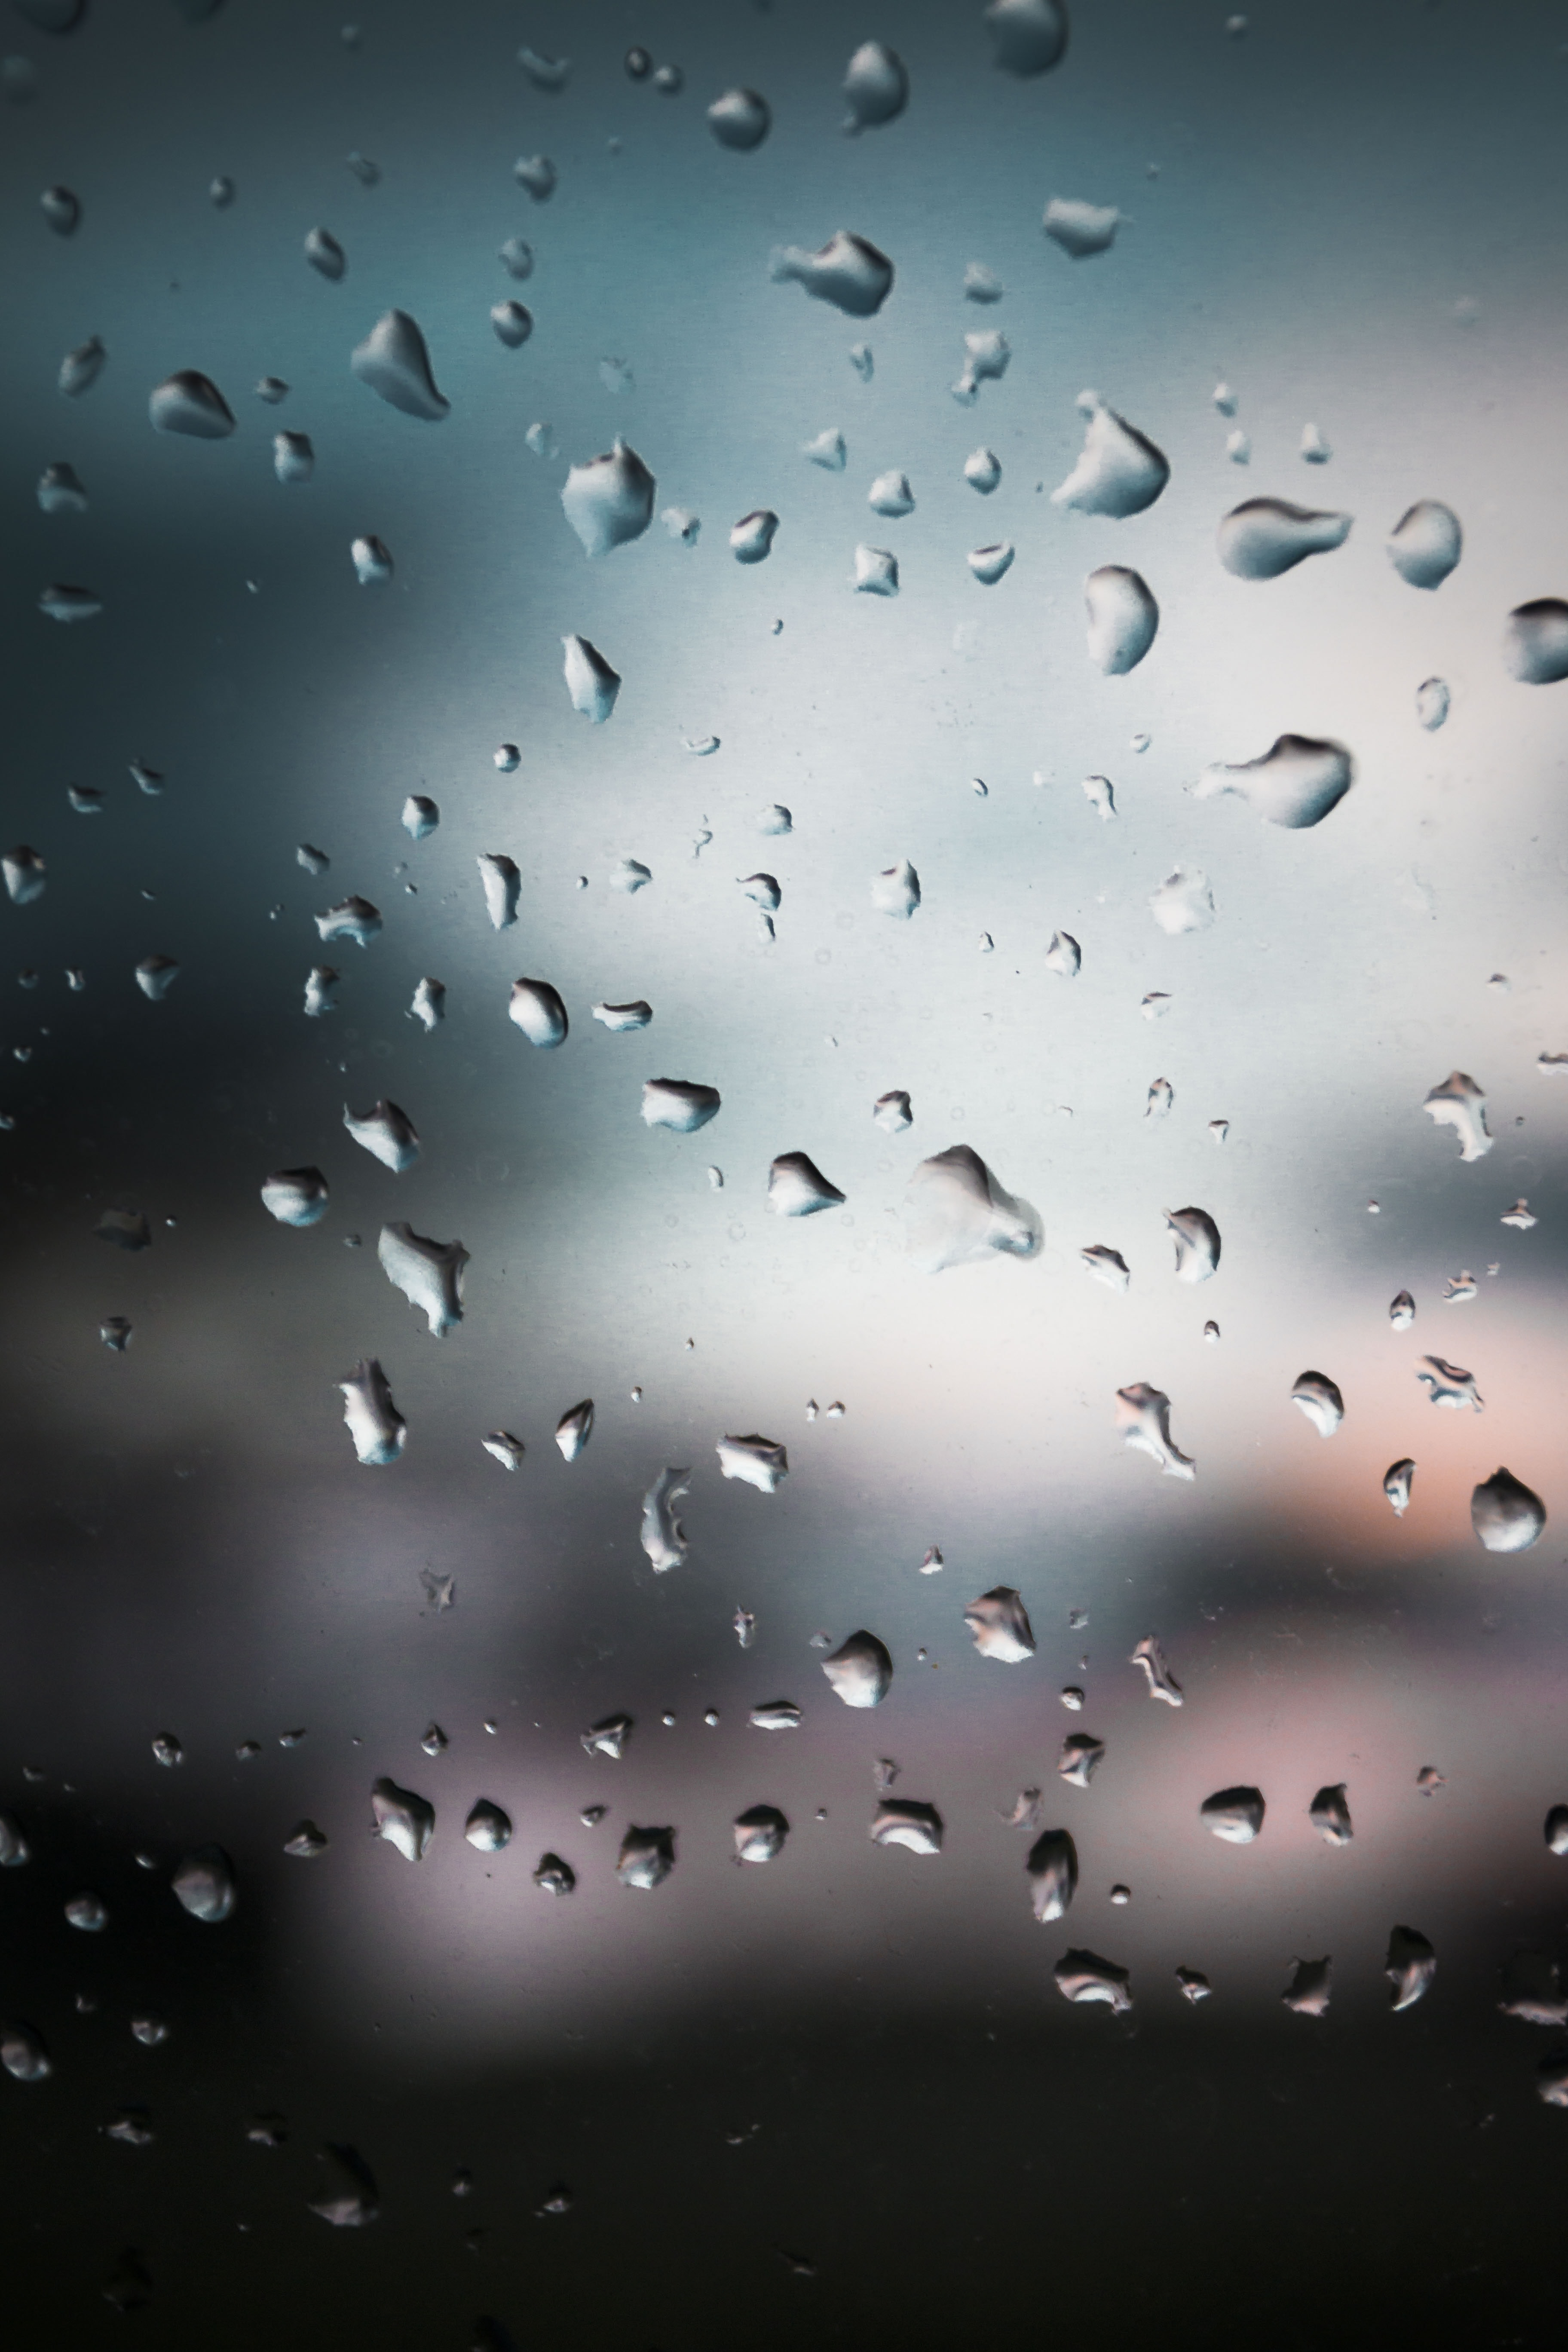 droplets on glass